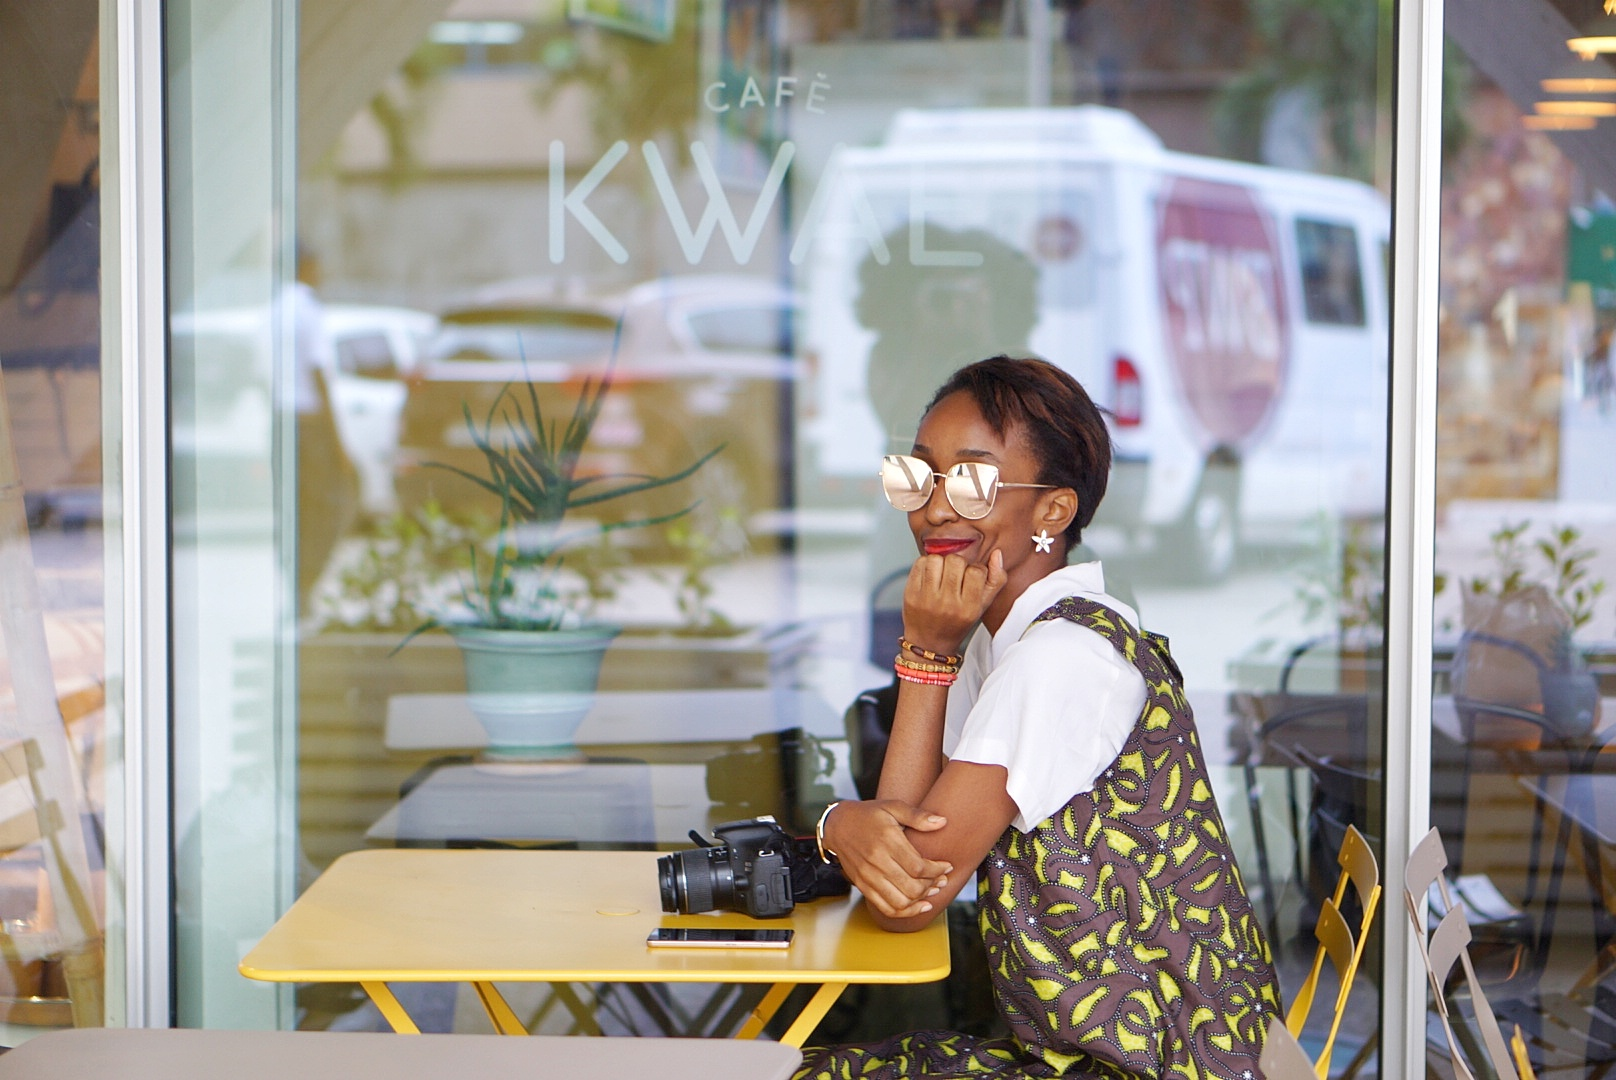 Nigerian Fashion and lifestyle blogger Cassie Daves sitting outdoor at Cafe Kwae in Accra, Ghana